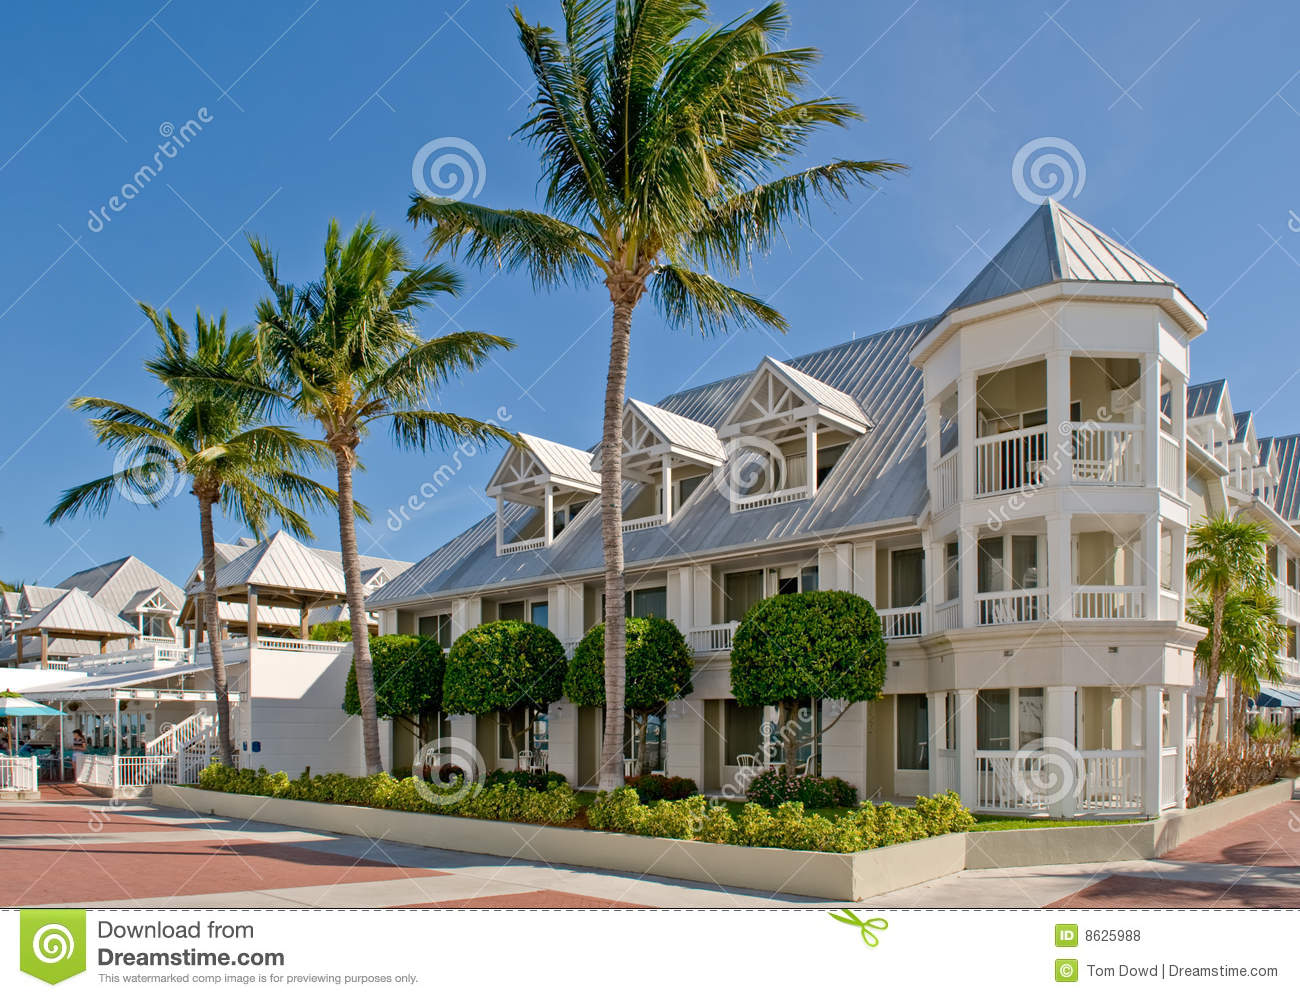 Florida condominiums